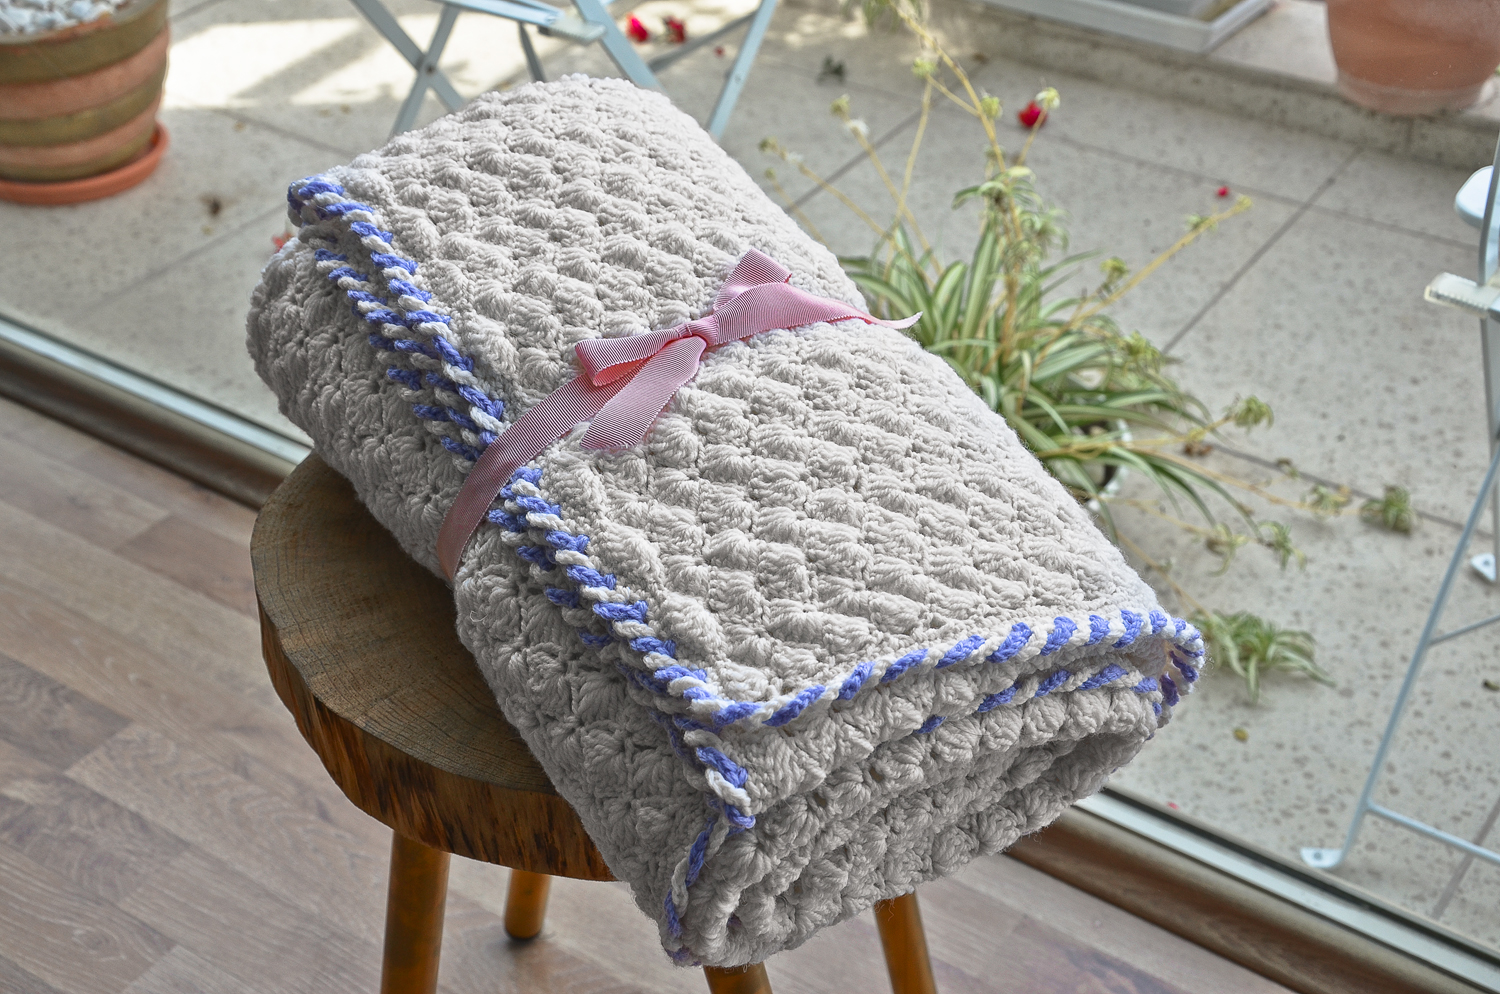 Wool crochet blanket